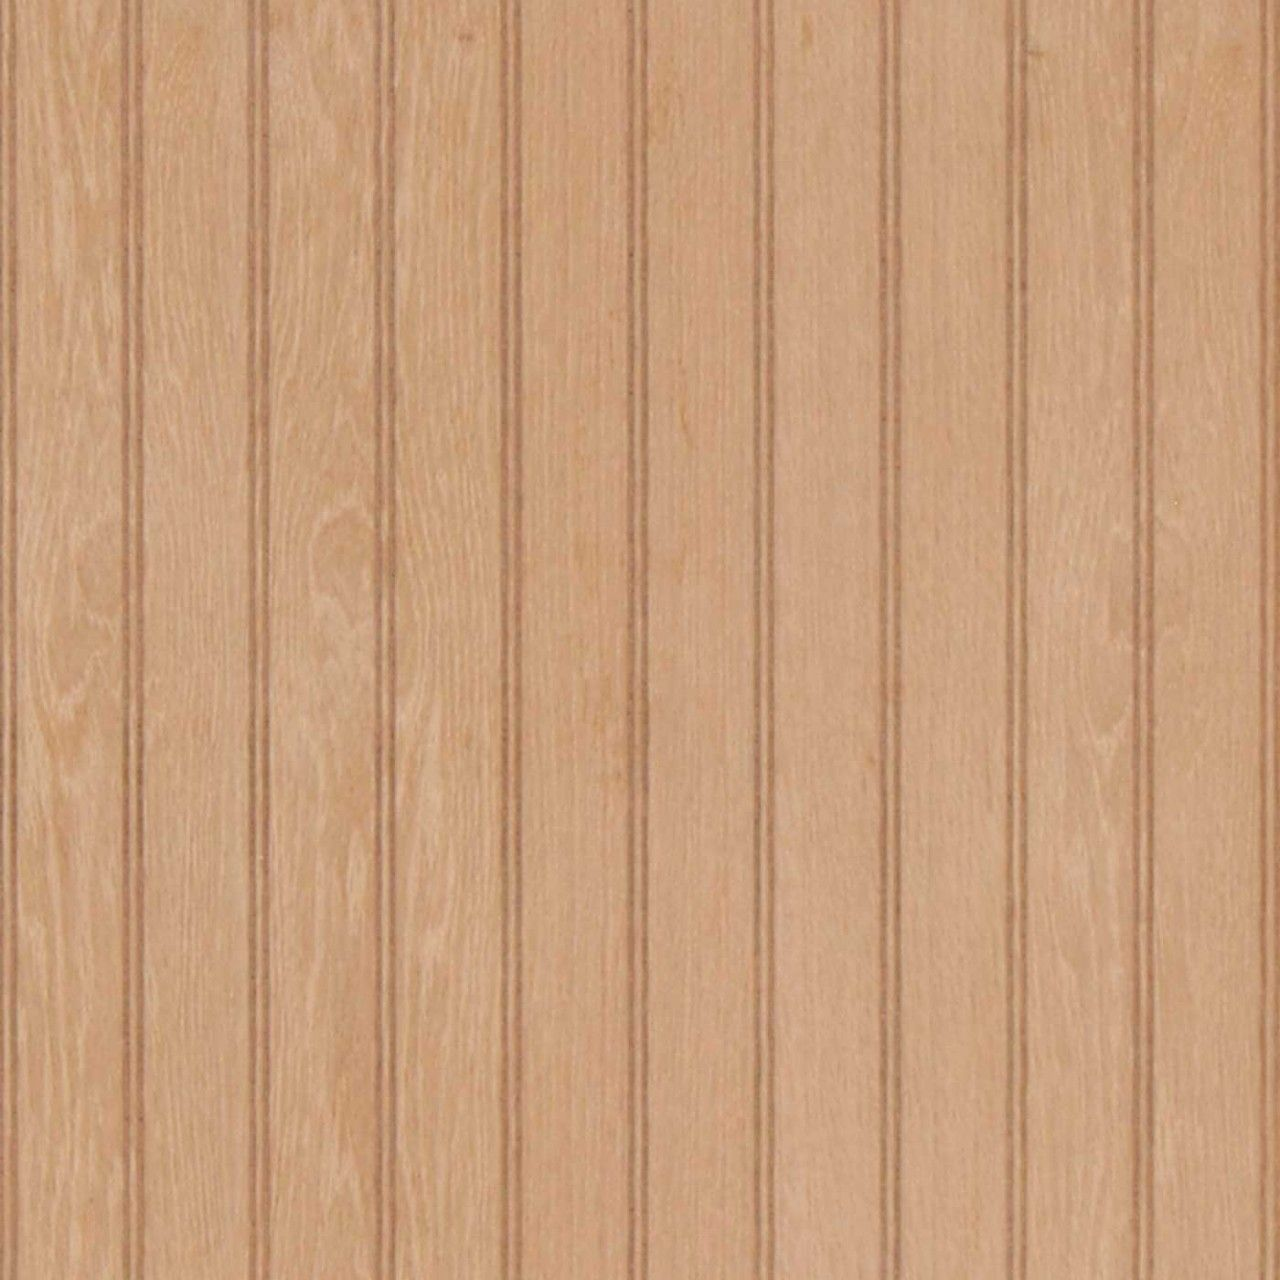 1 4 Red Oak Veneer 2 Beadboard Paneling Unfinished Paneling Veneer Panels Beadboard